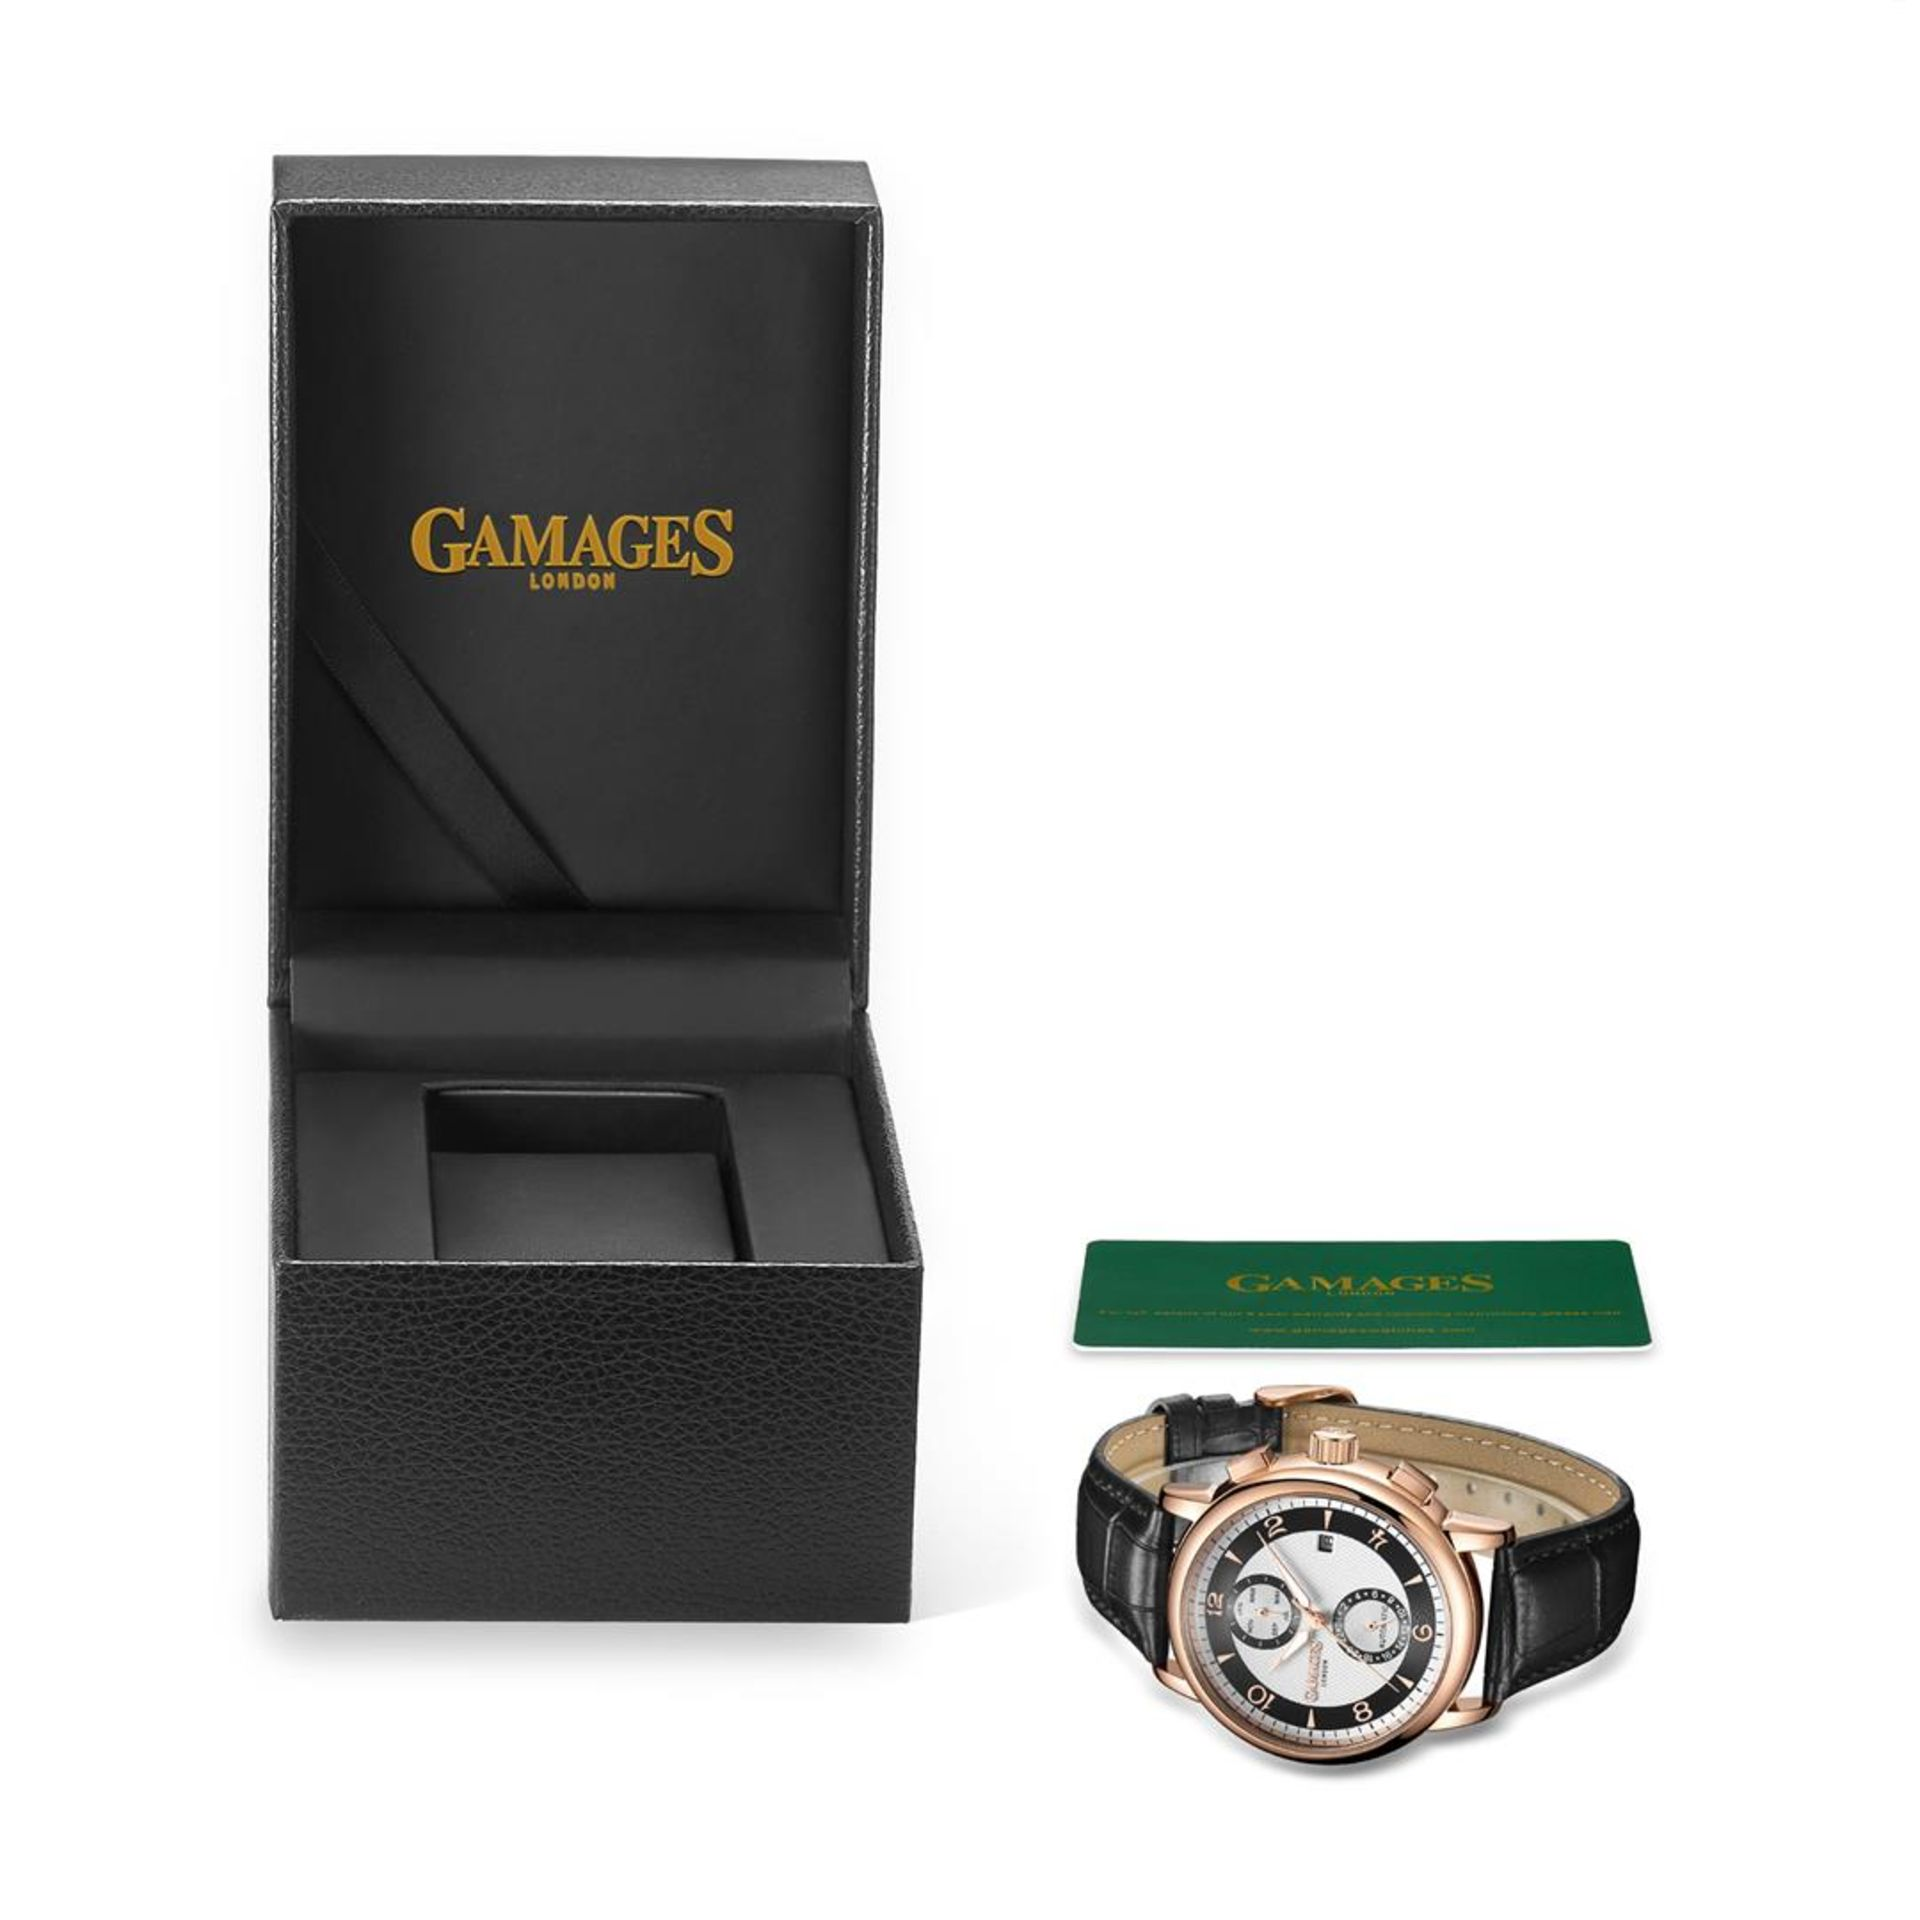 GAMAGES OF LONDON Limited Edition Hand Assembled Mystique Automatic Silver - Image 2 of 5